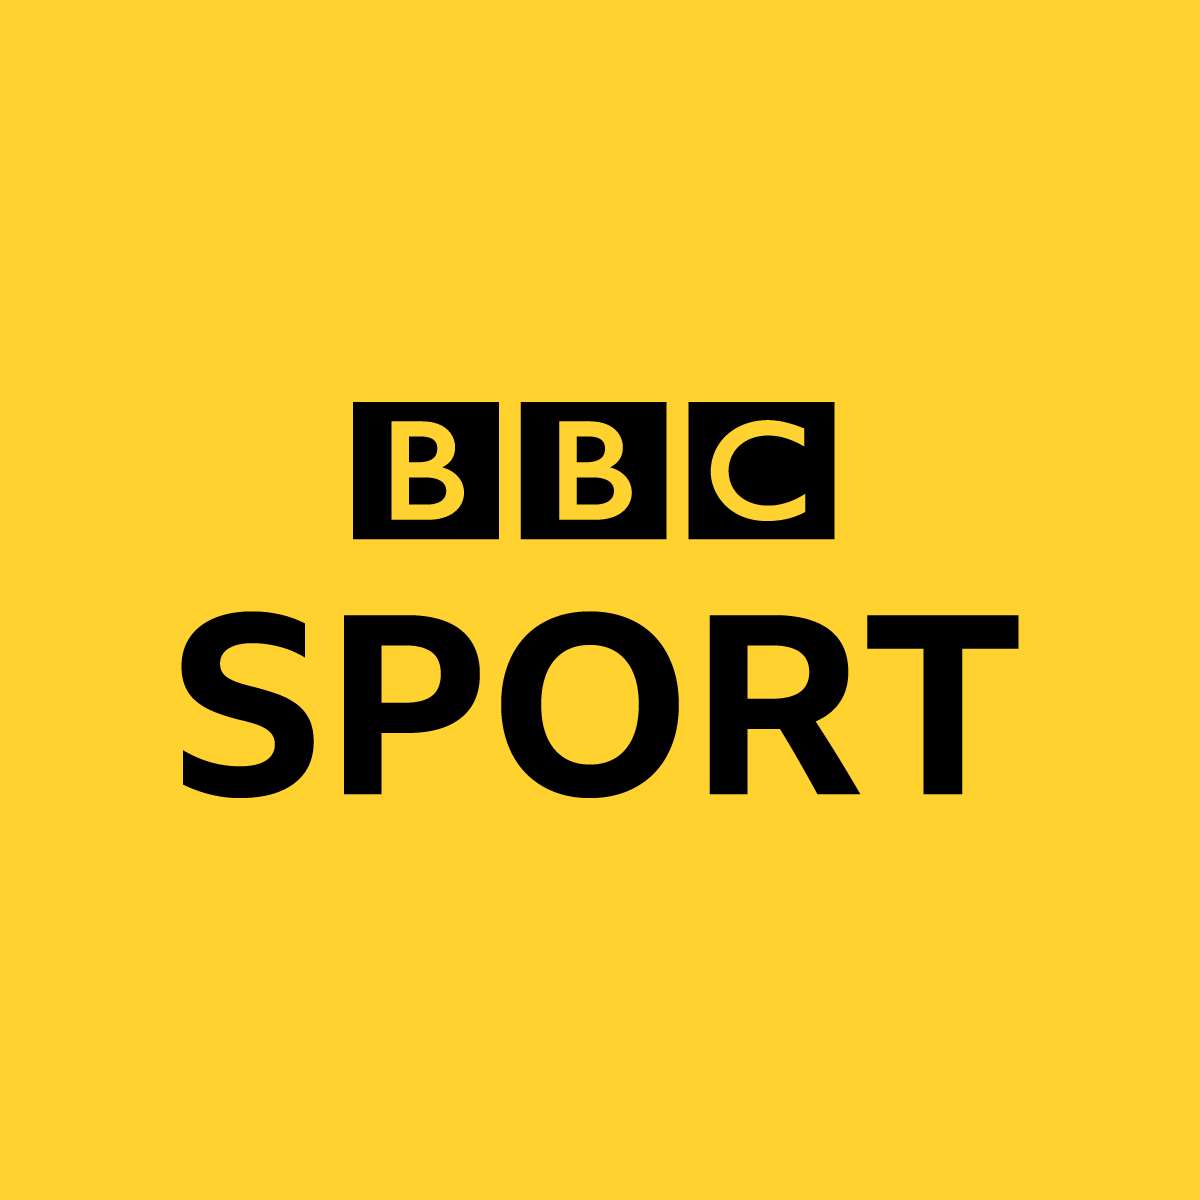 Watch: Celtic & Rangers players clash after final whistle - BBC Sport thumbnail